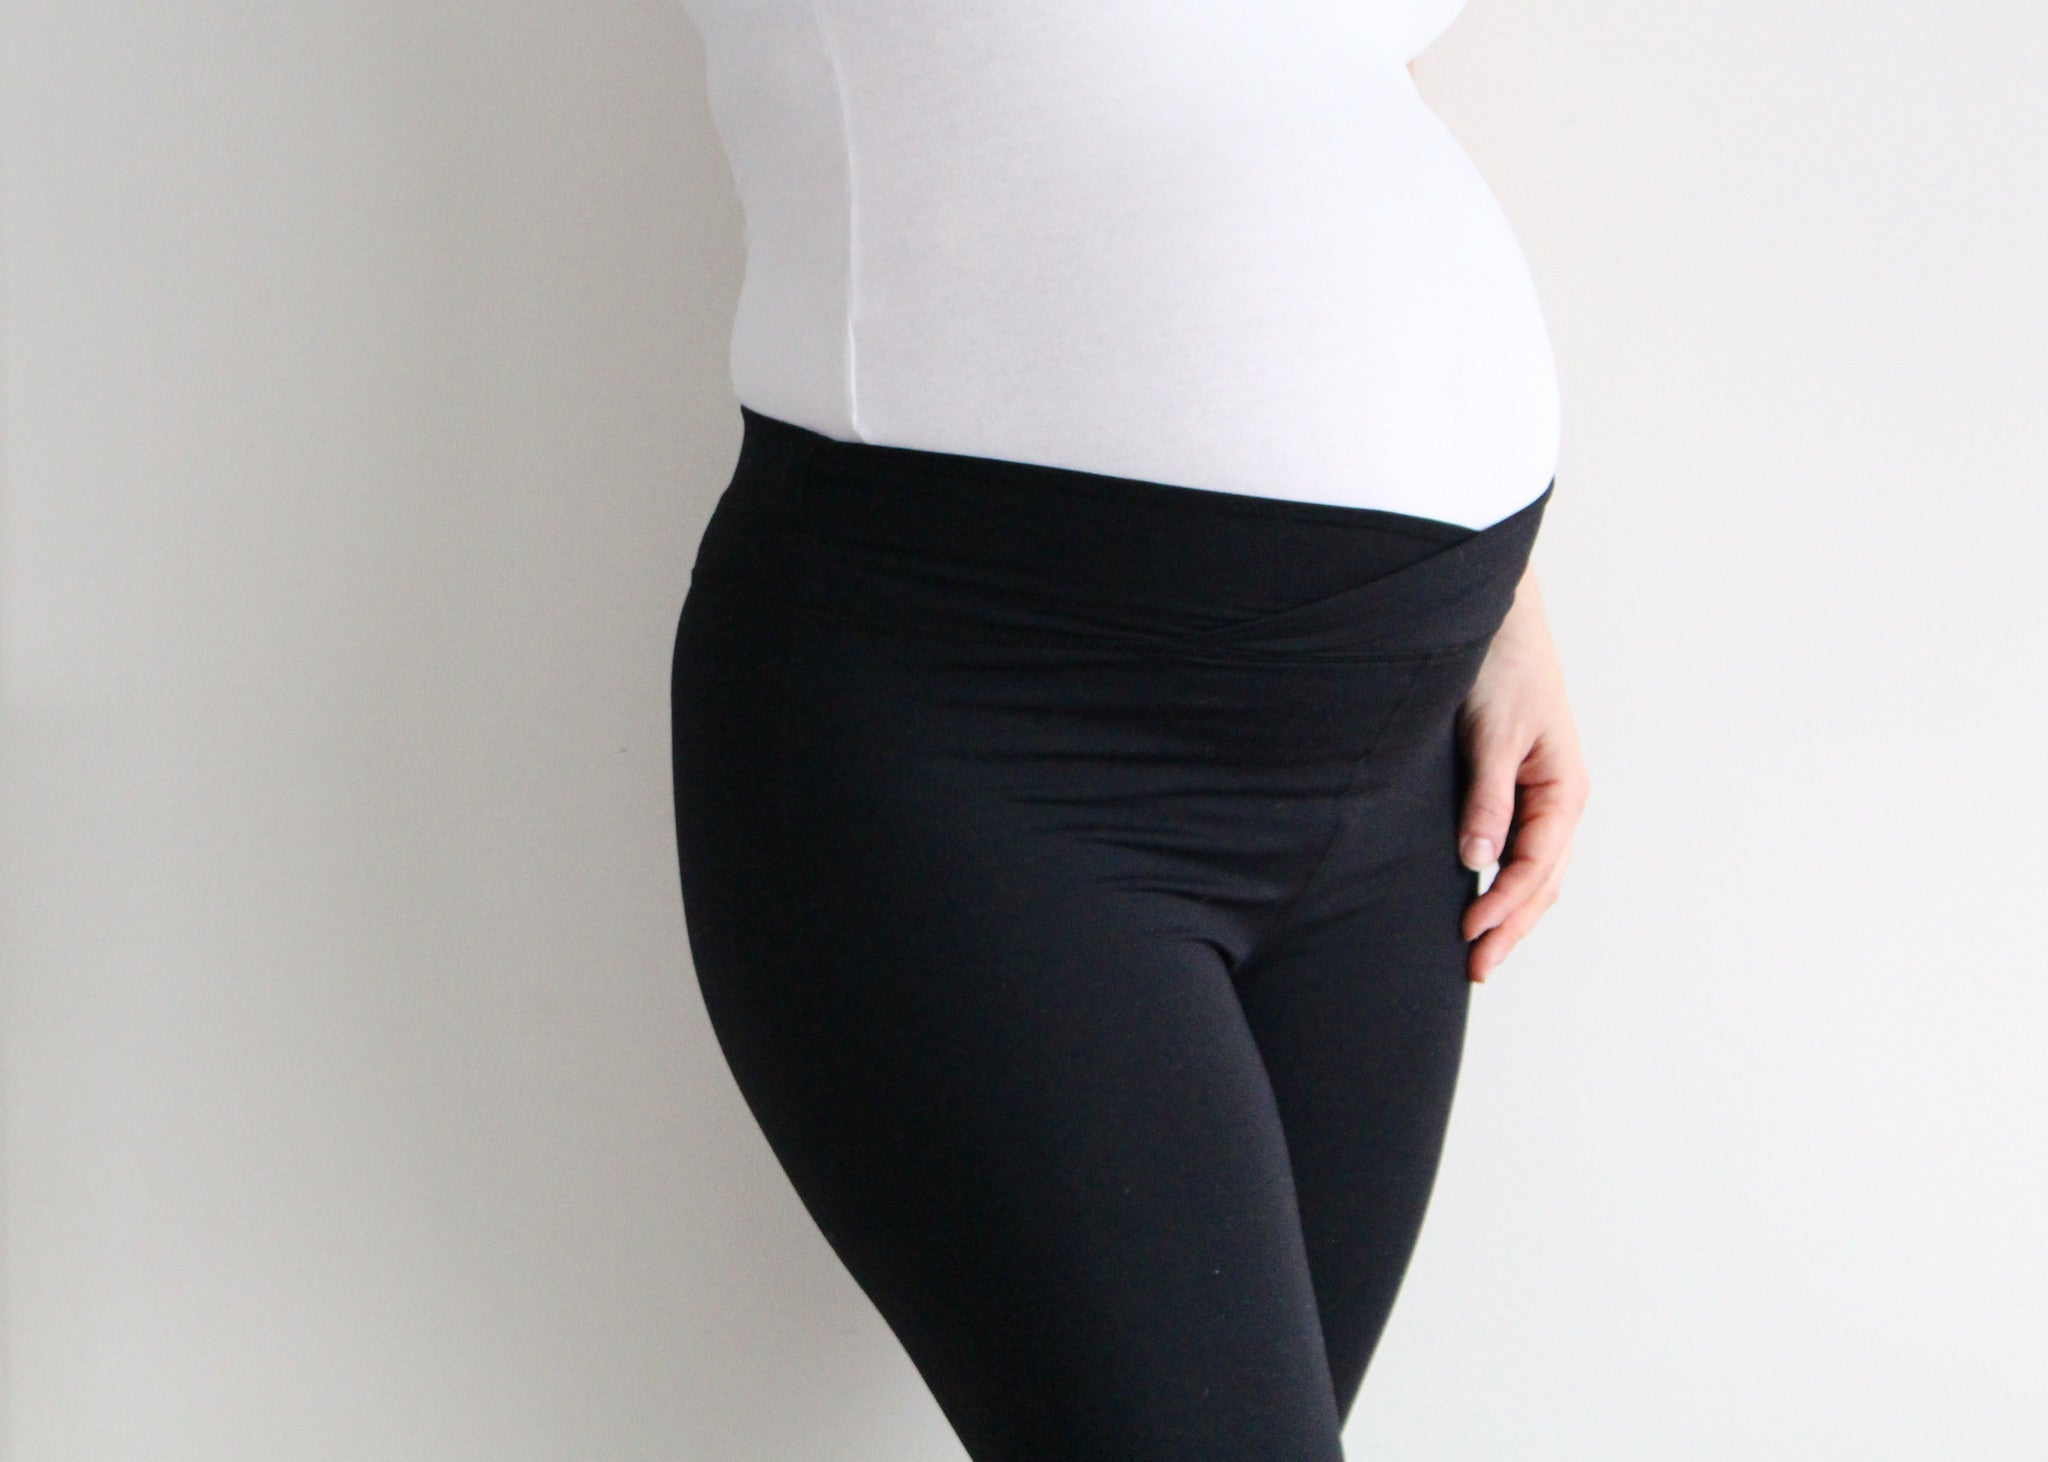 high waisted activewear legging postpartum pregnancy over the belly pregnant flatly style fashion fitness maternity fashion baby bump